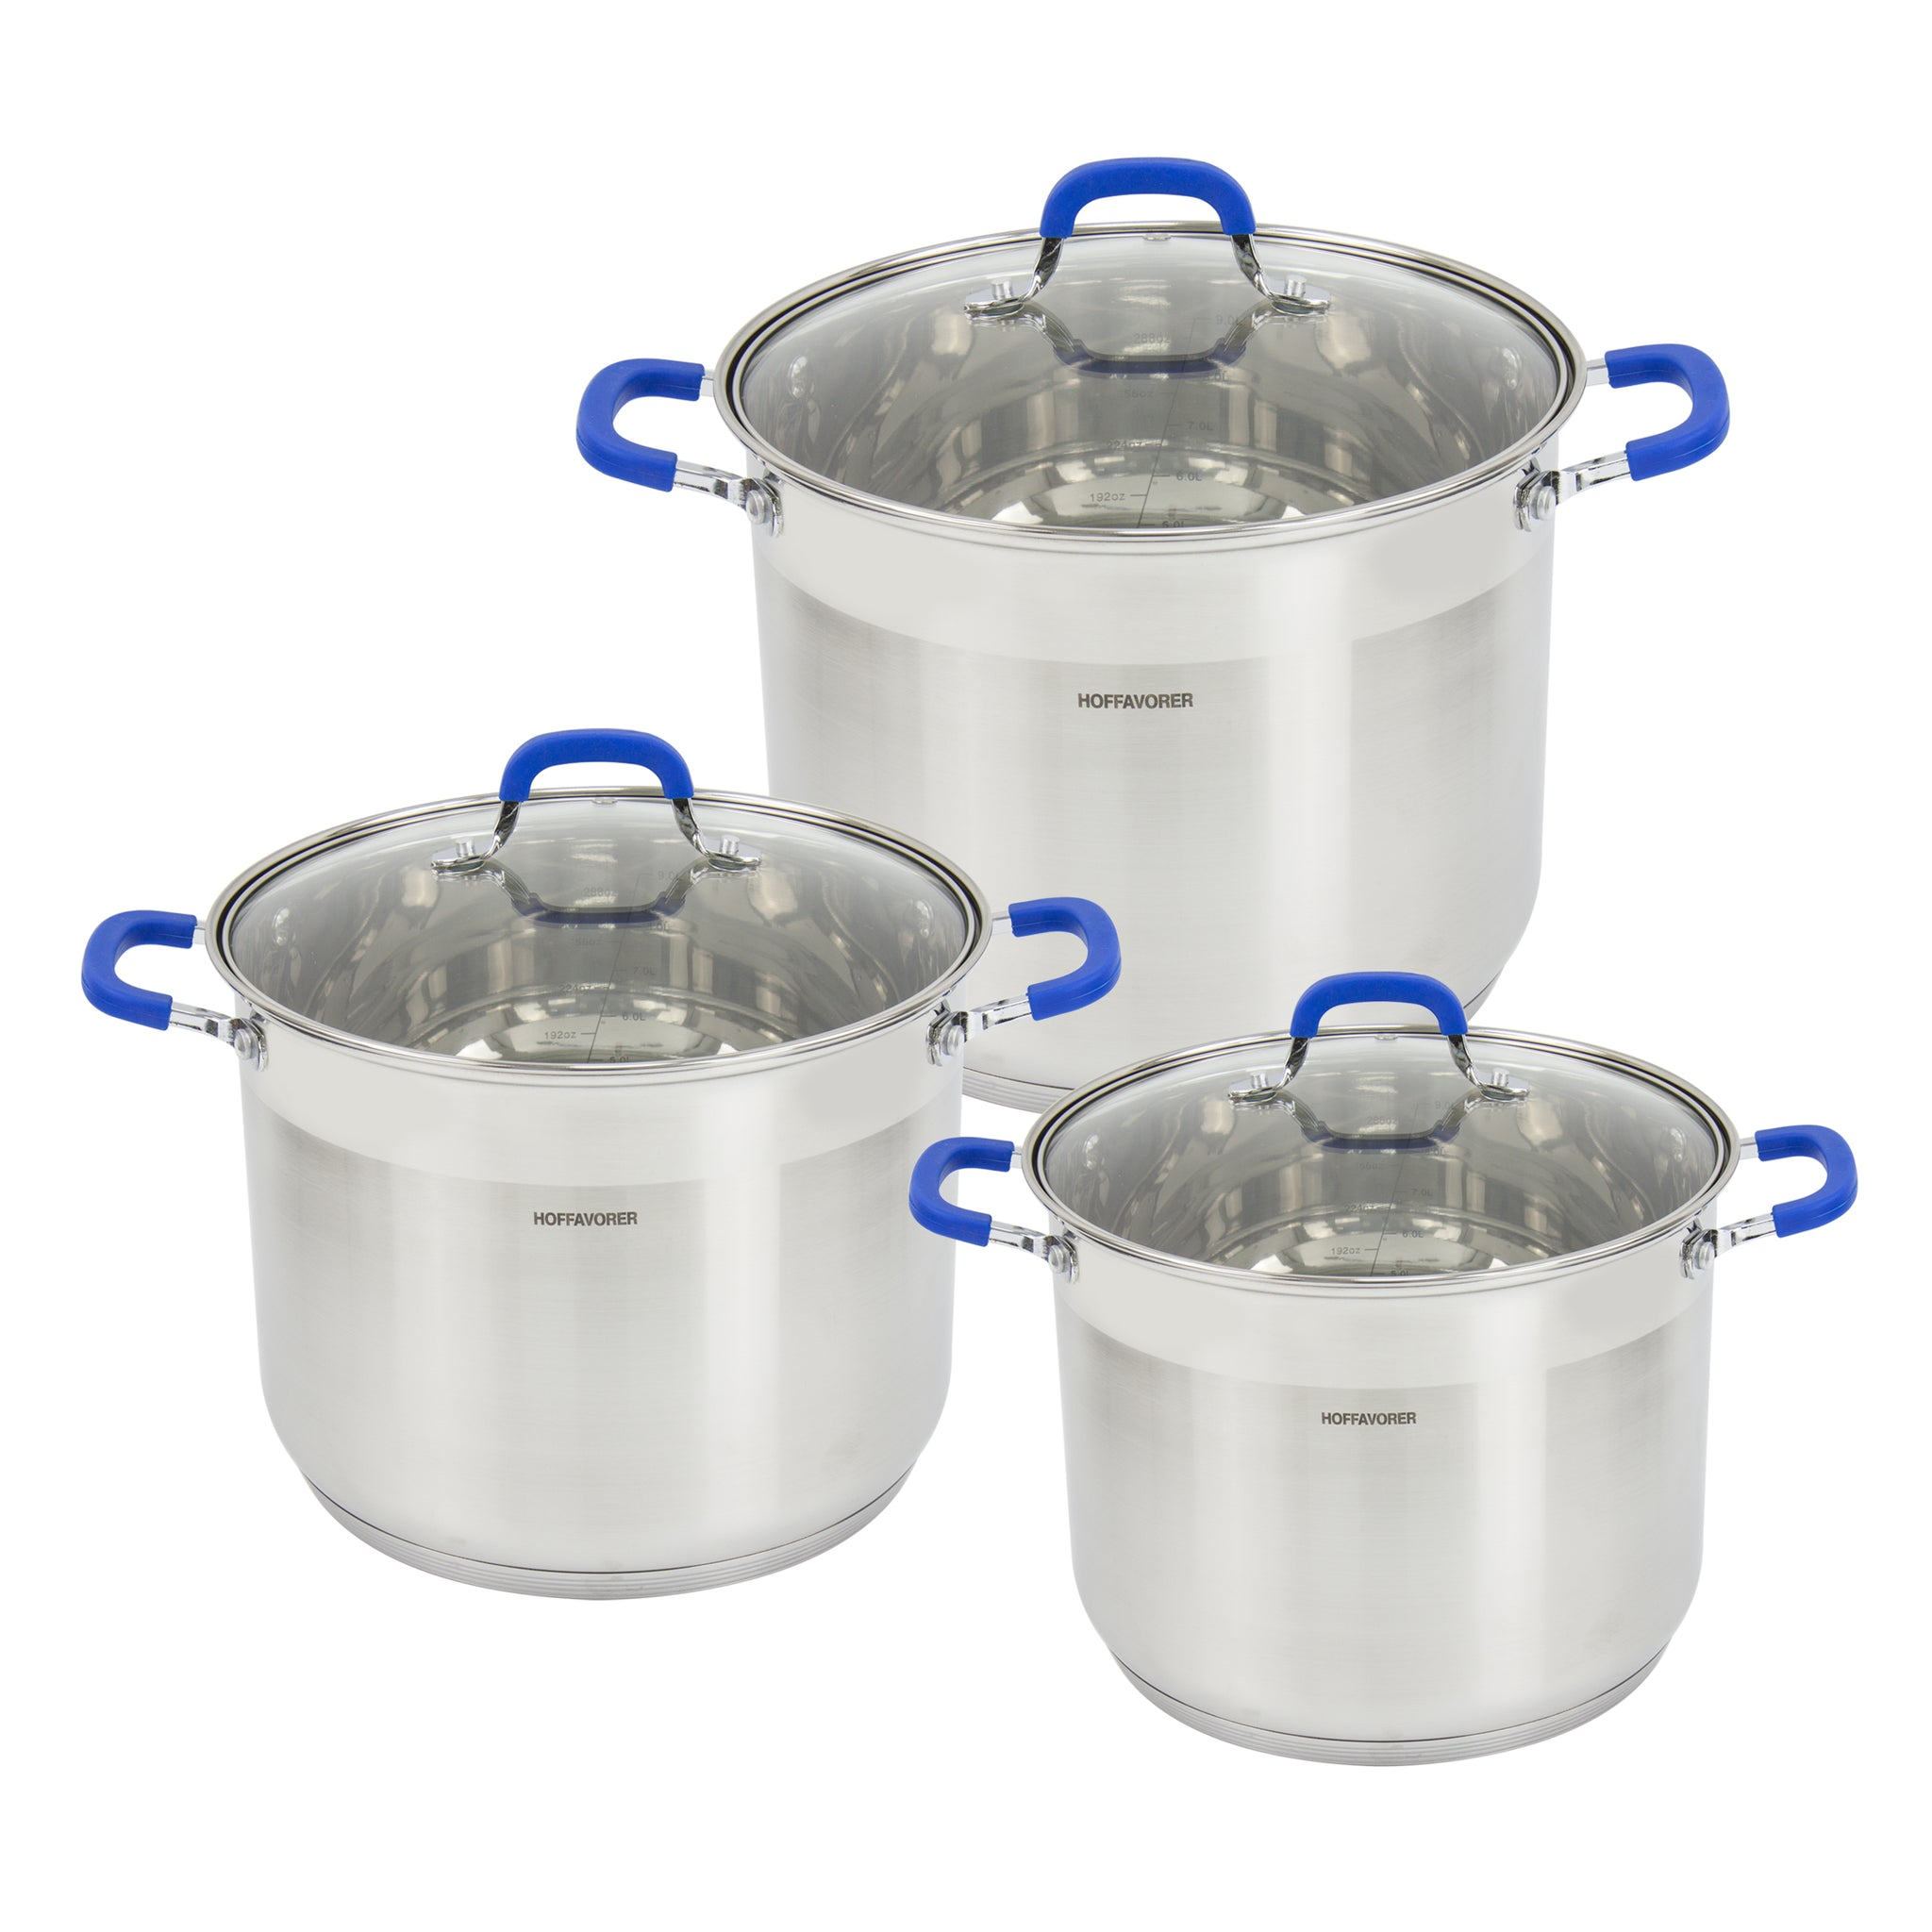 HAFFAOVER STAINLESS STEEL POTS 6 PCS INCLUDING LIDS